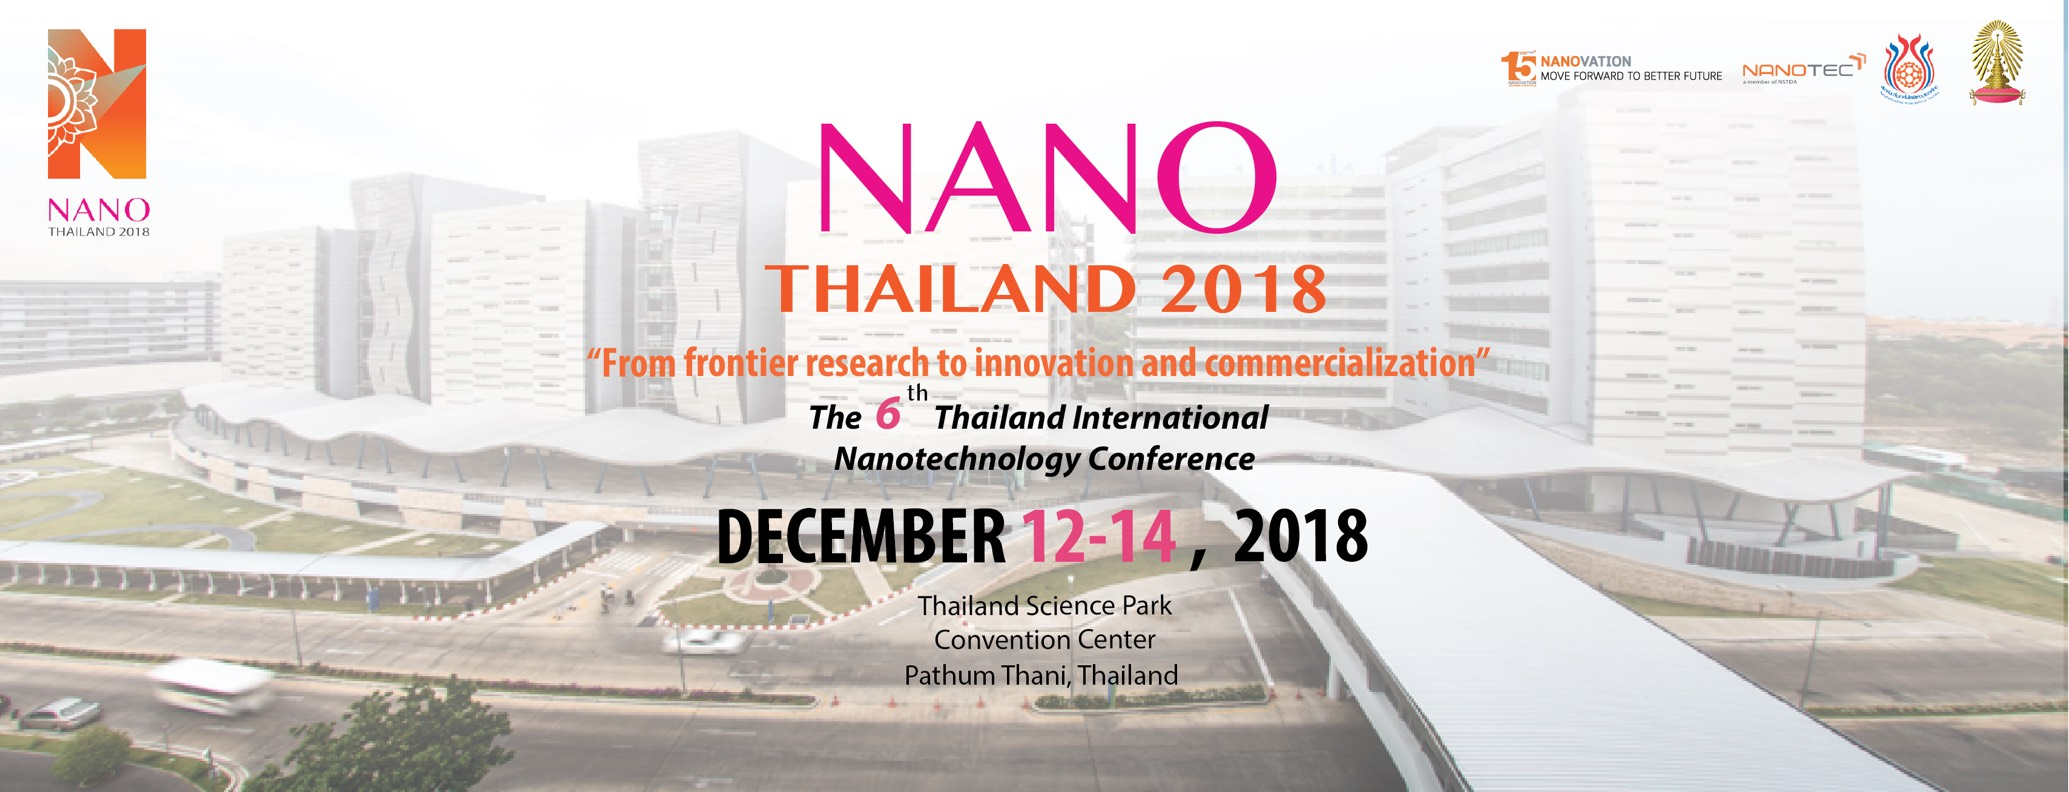 The 6th Thailand International Nanotechnology Conference (NanoThailand 2018)